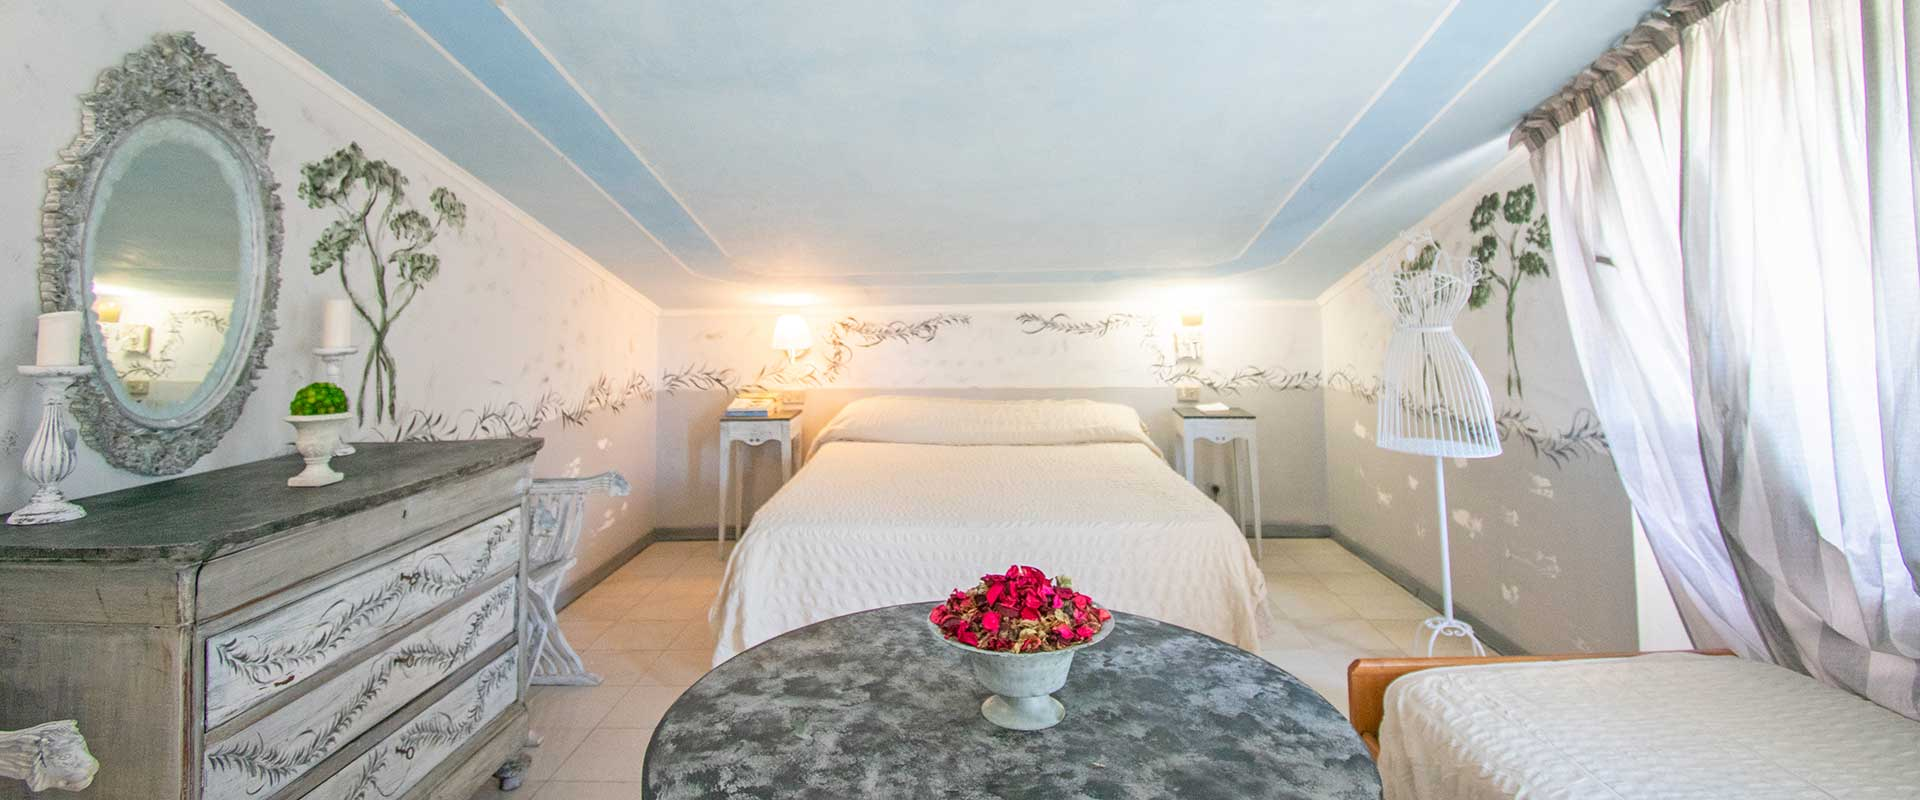 Rooms for families, couples and business in marina di massa